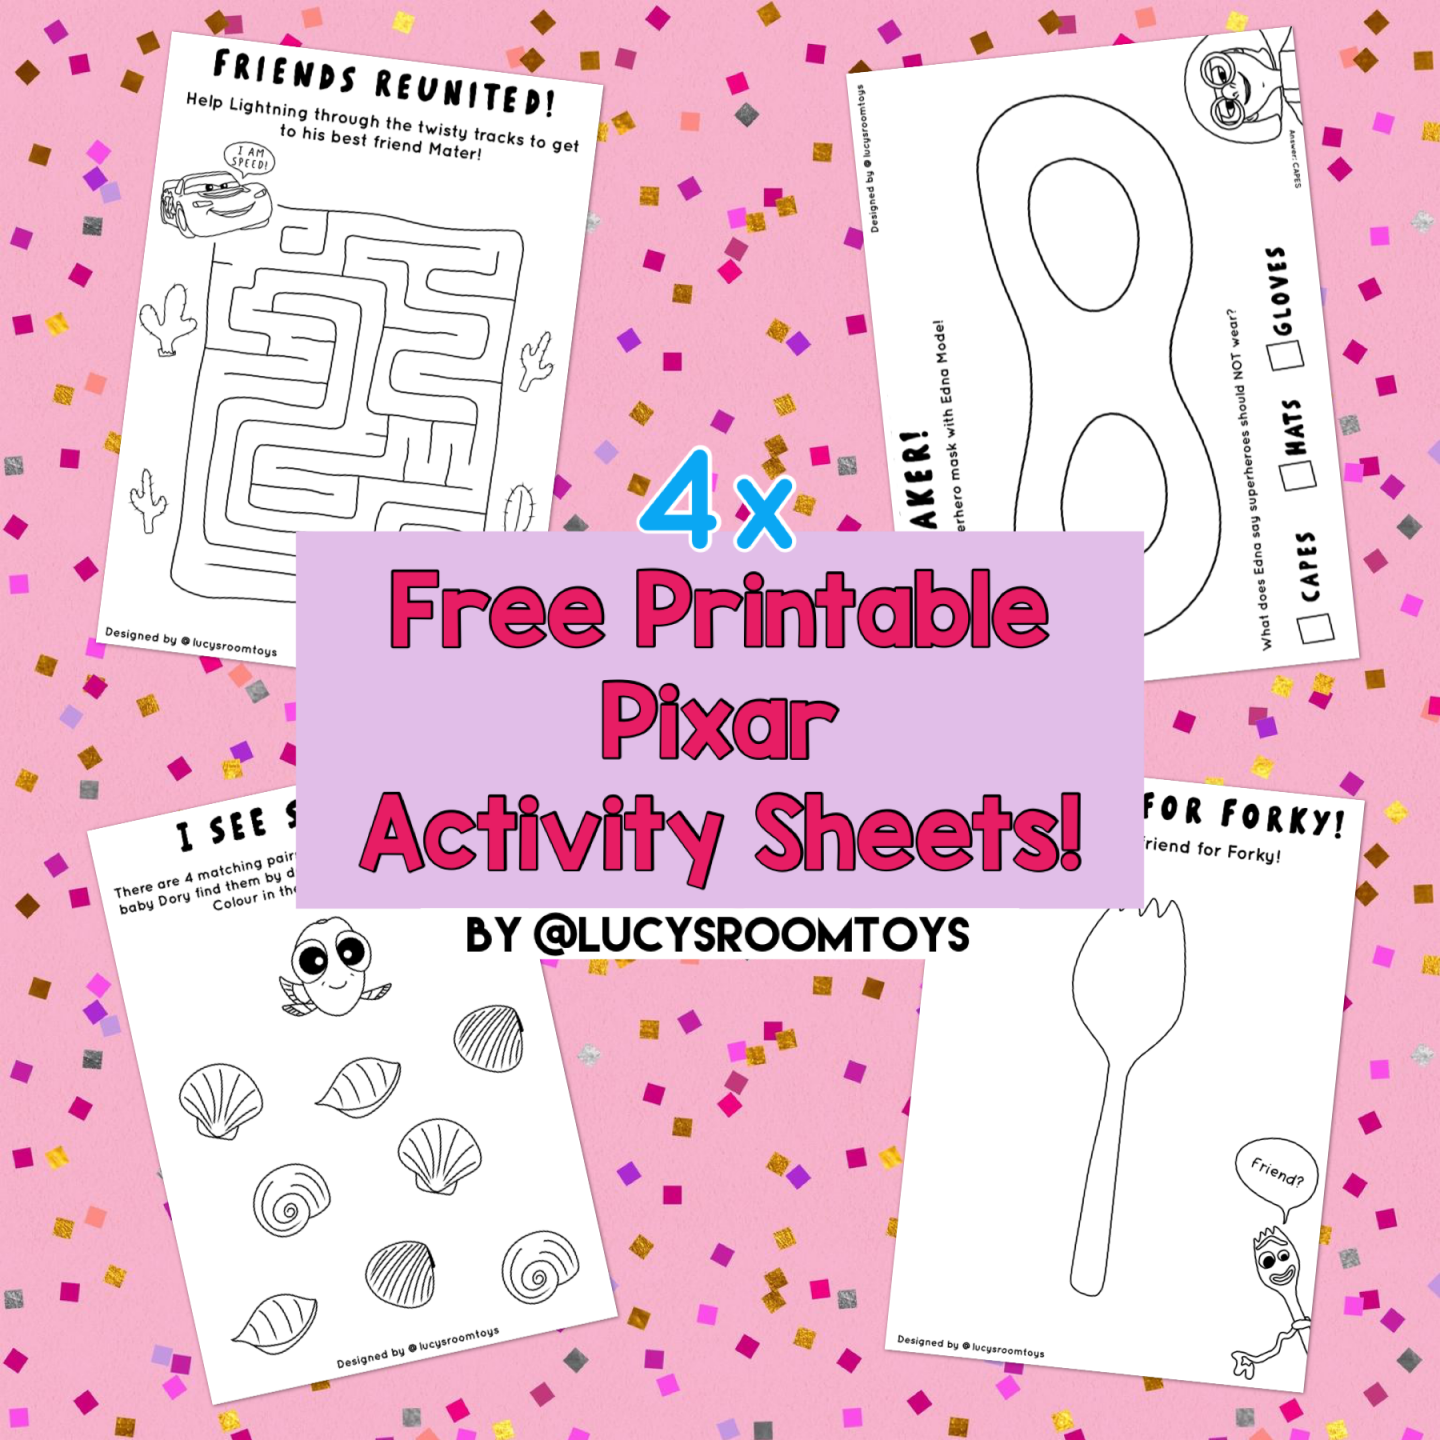 Free Printables! – Activity Sheets (Part 3)